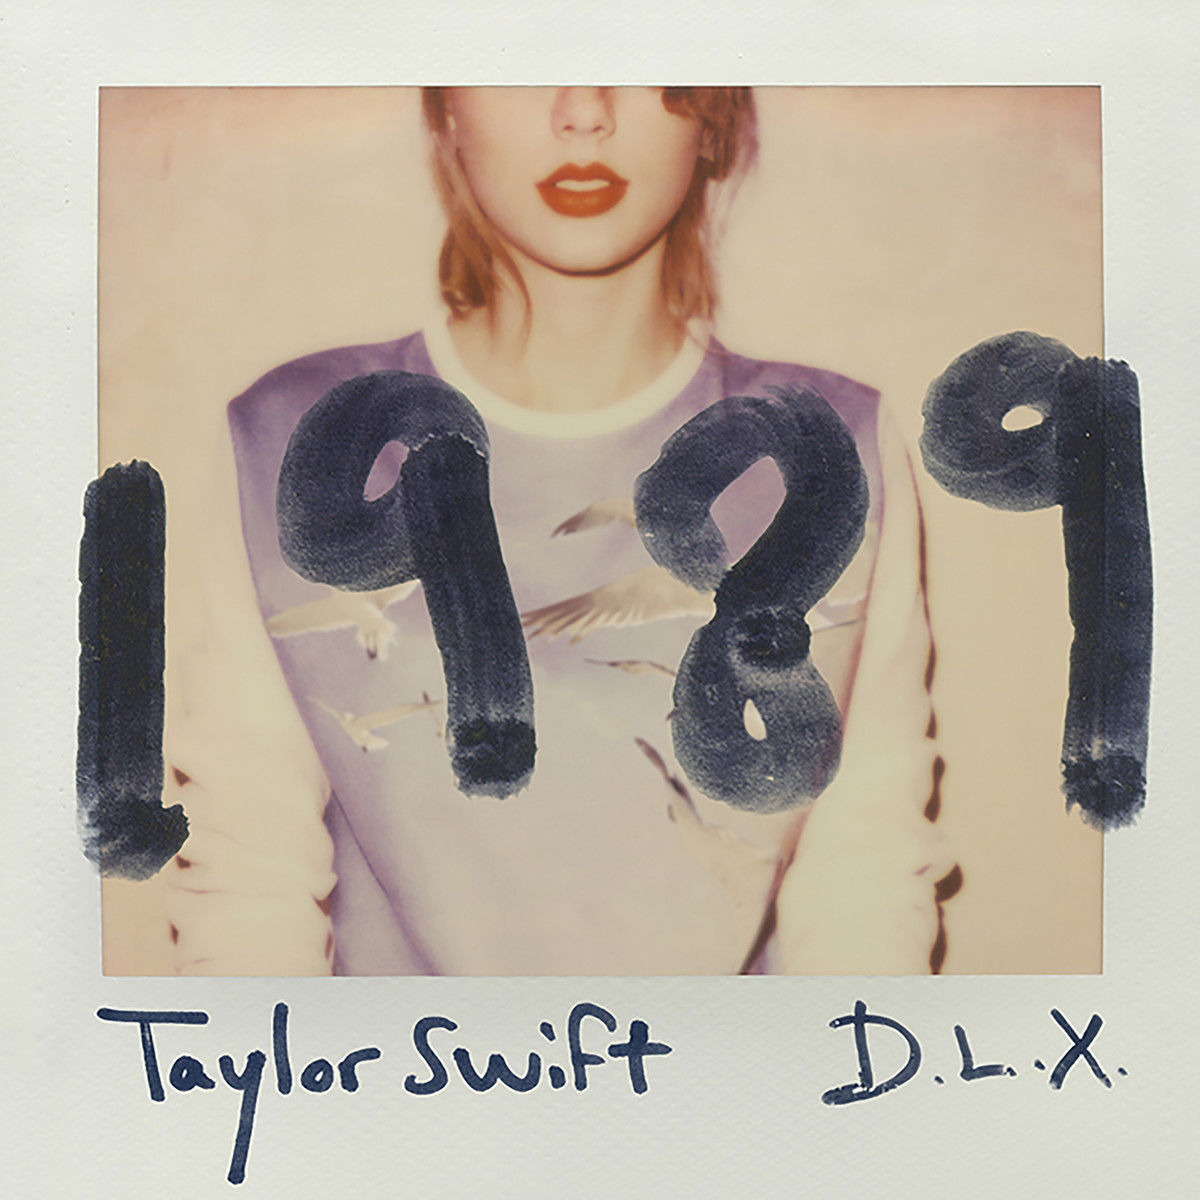 Taylor Swift 1989 Reto launch her own streaming service called Swiftie